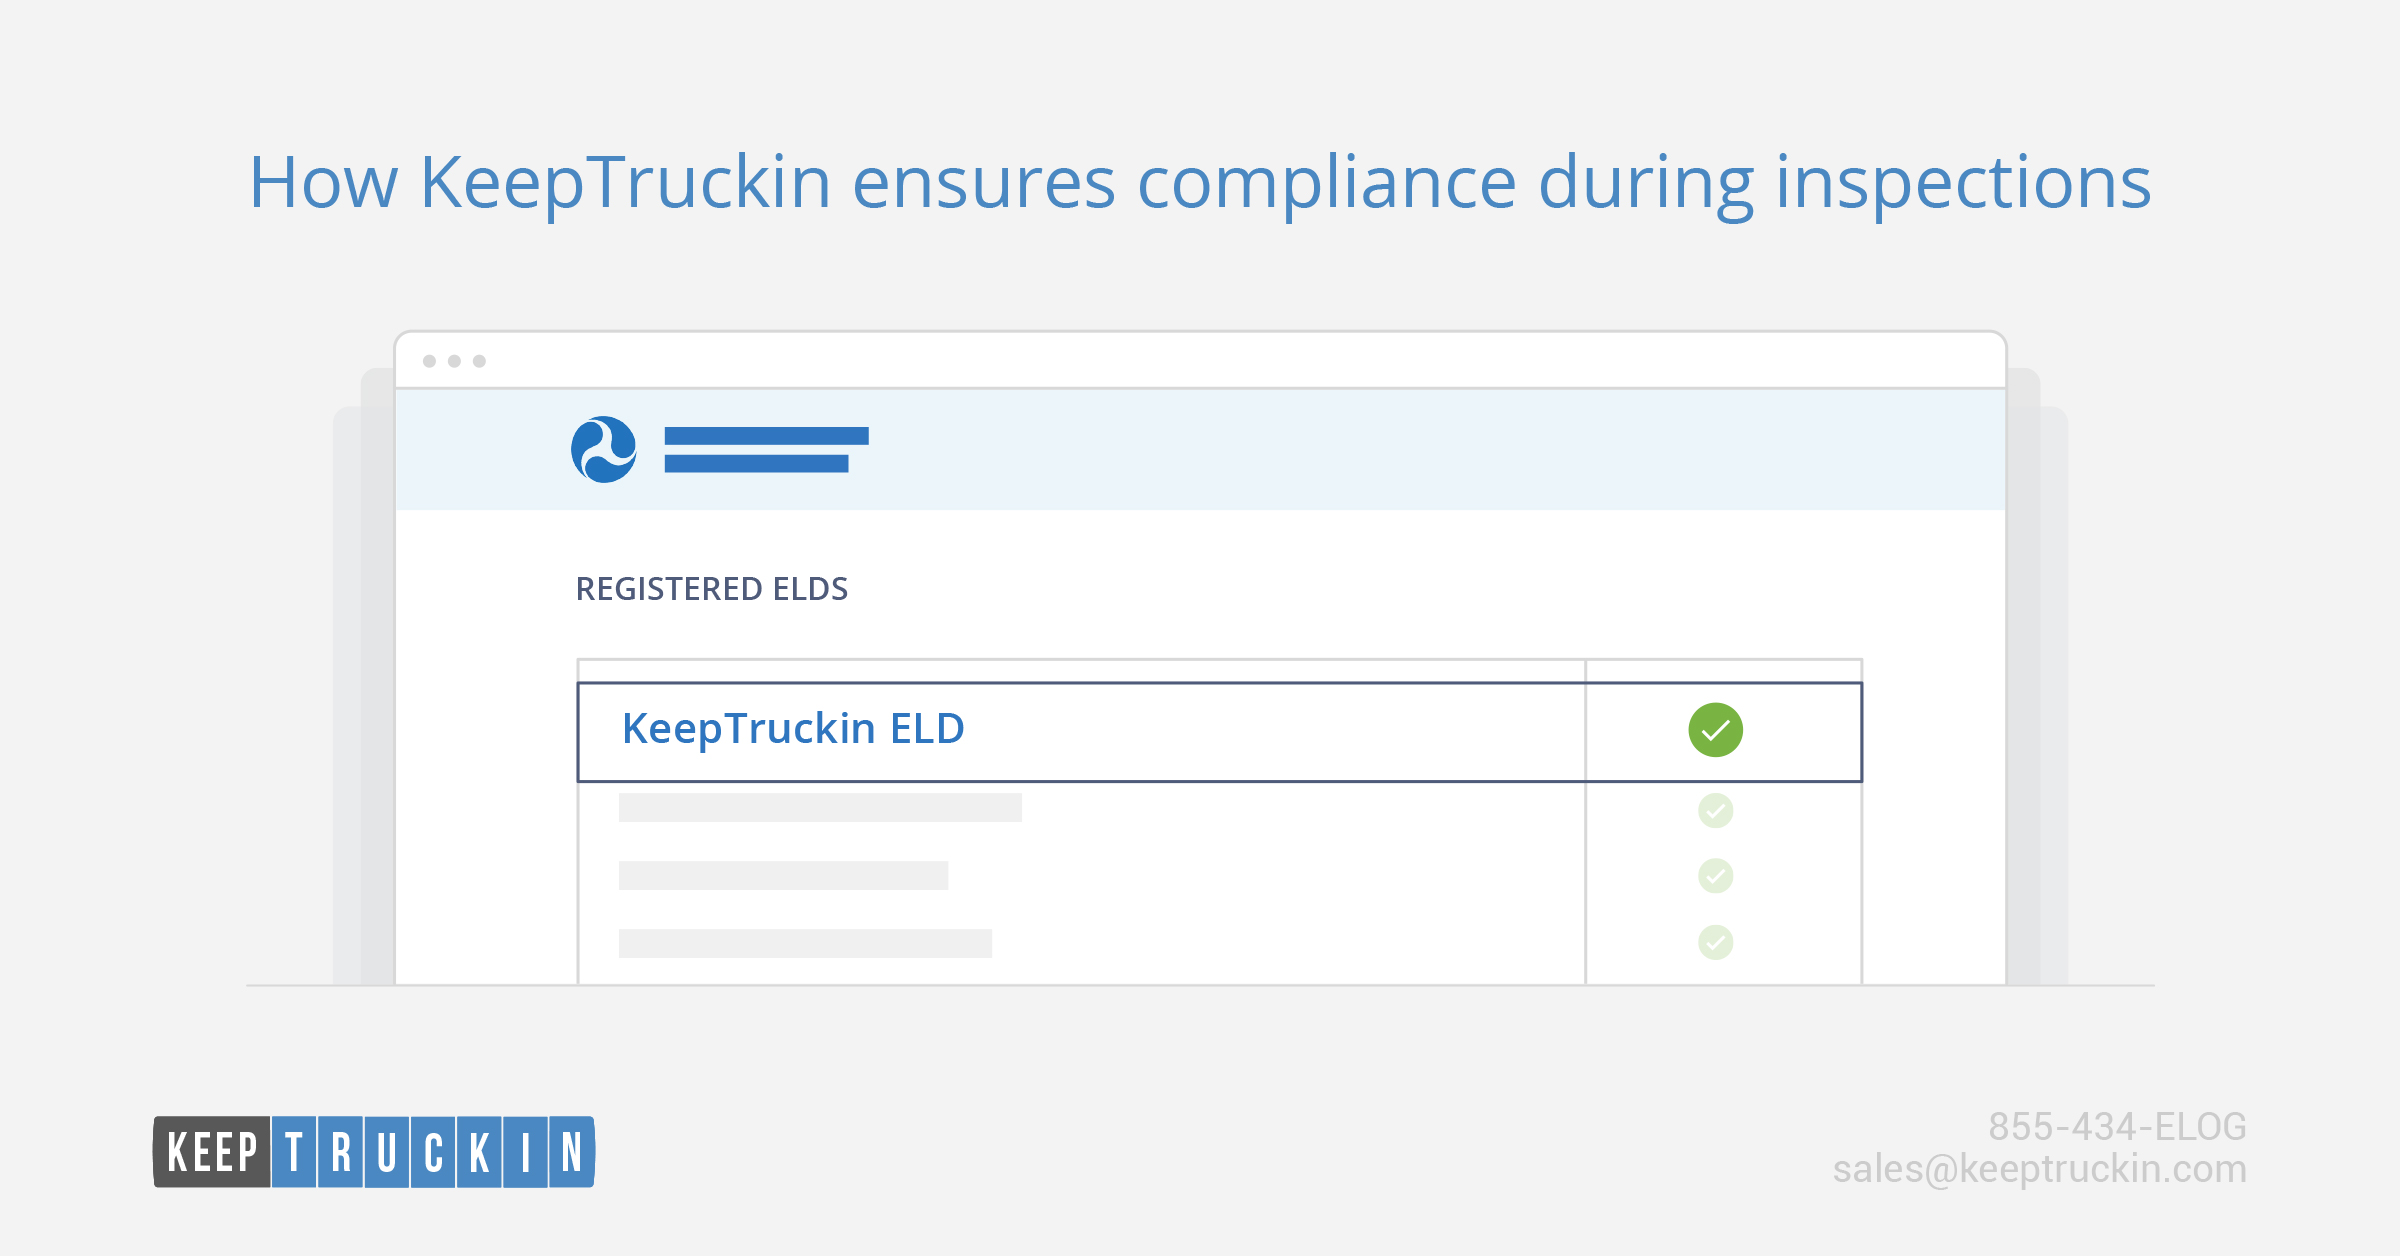 How KeepTruckin ensures compliance during inspections